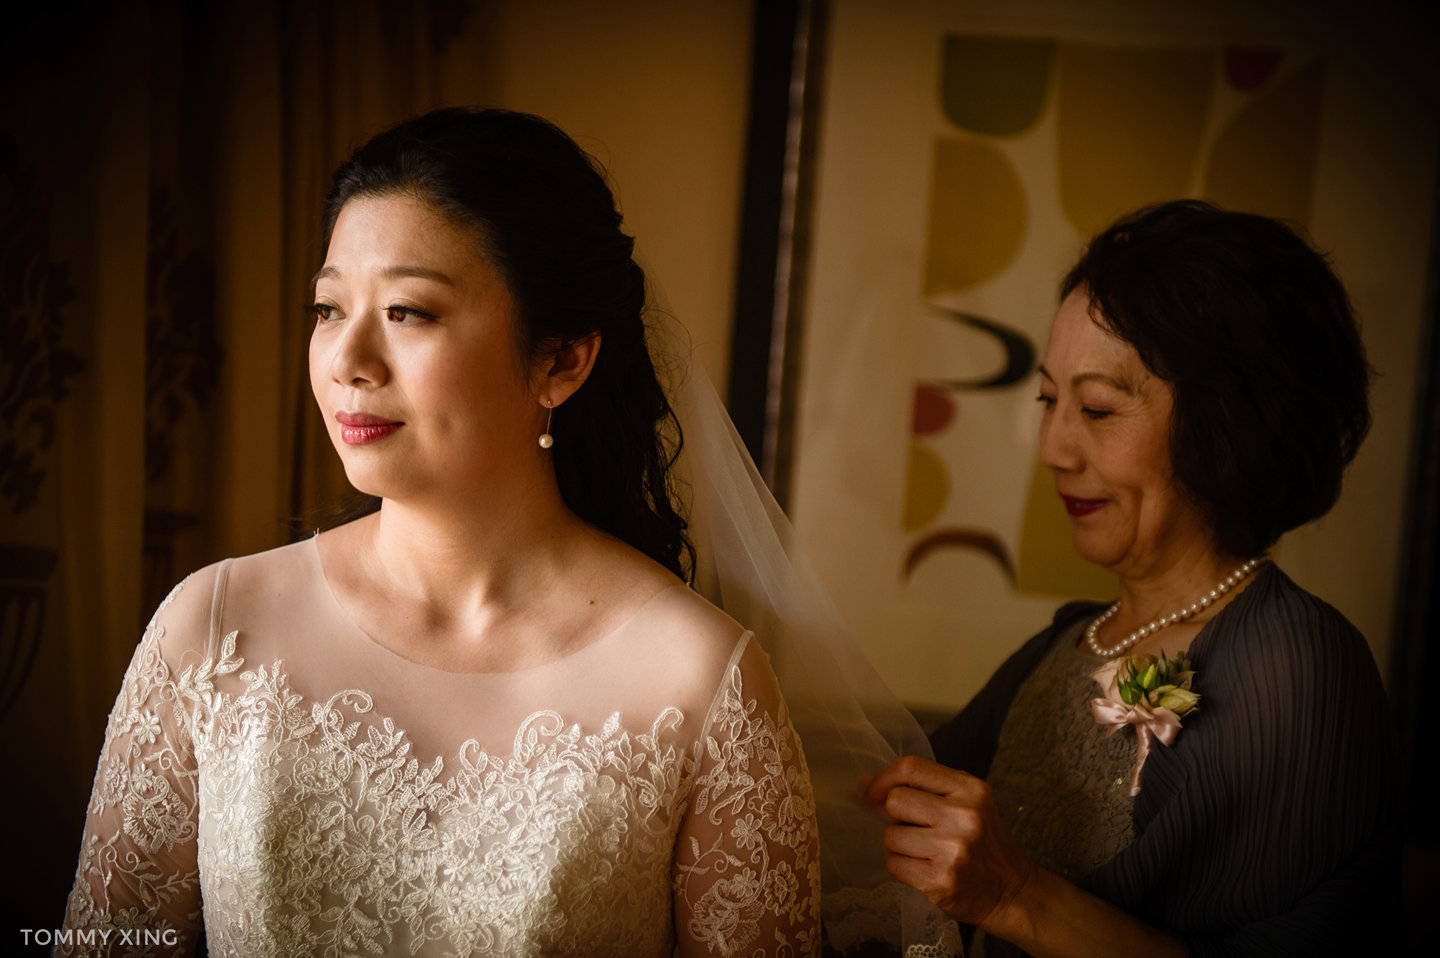 San Francisco Wedding Photography Valley Presbyterian Church WEDDING Tommy Xing Photography 洛杉矶旧金山婚礼婚纱照摄影师054.jpg